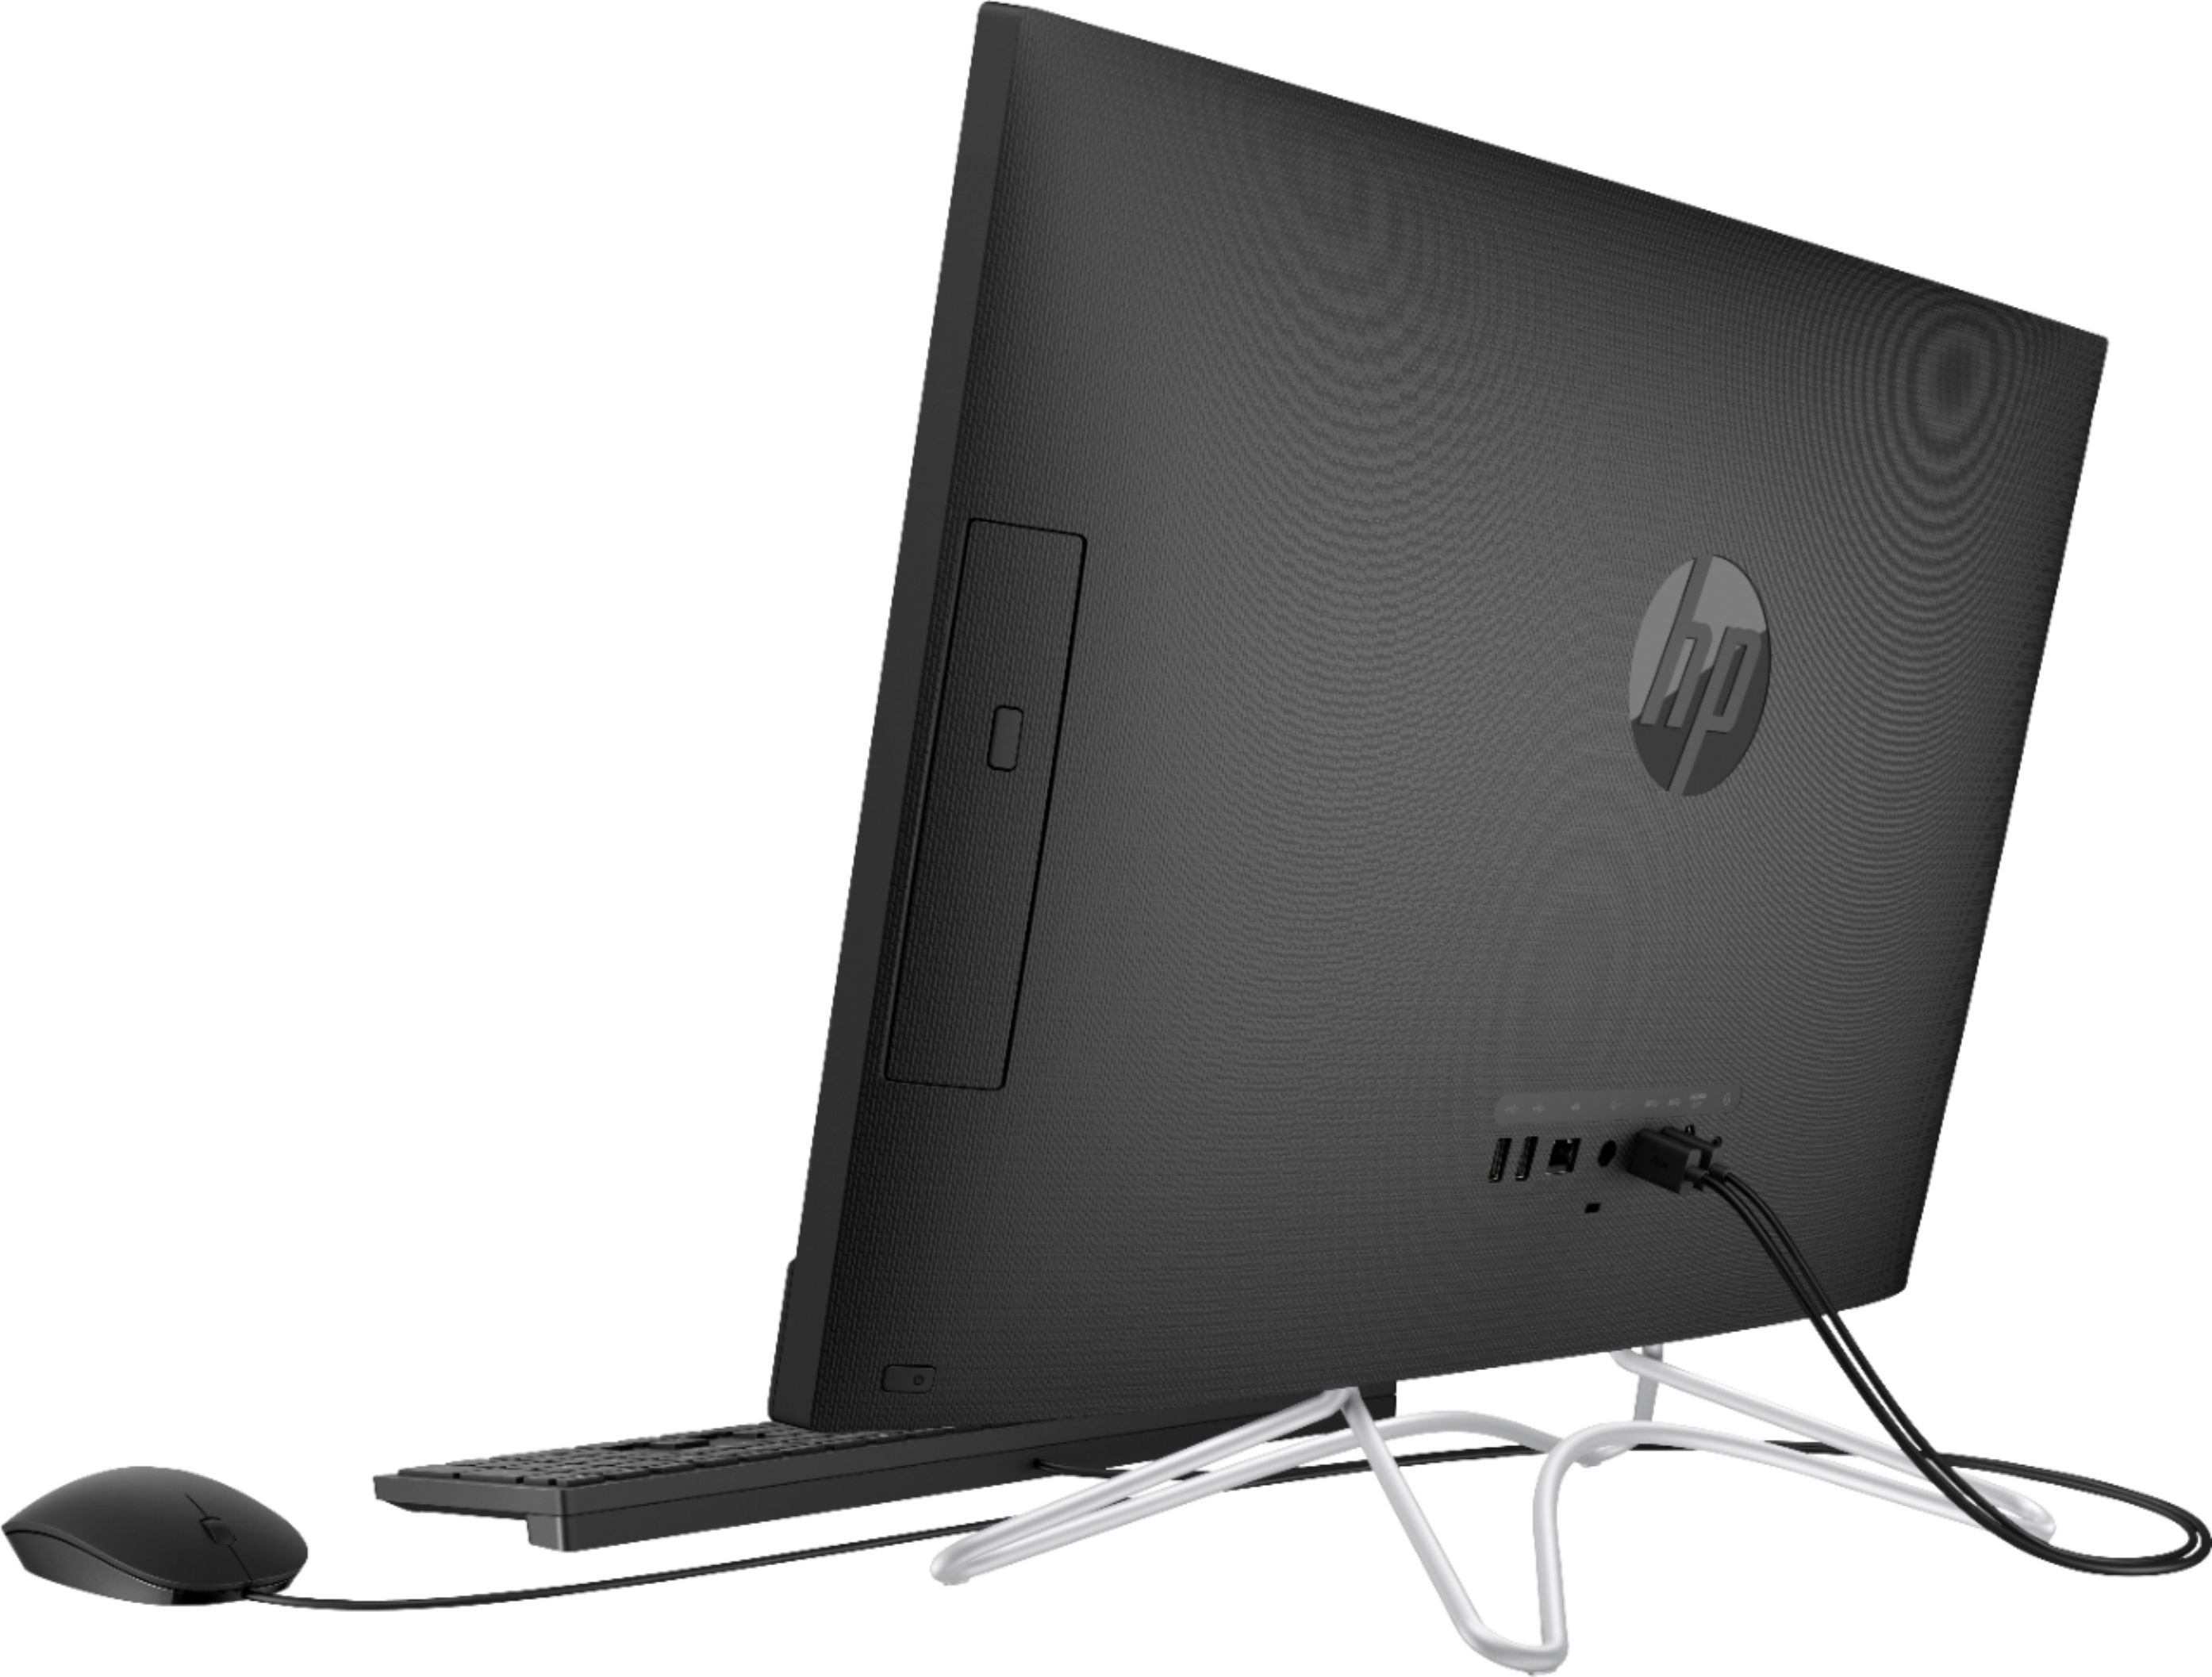 """Alt View Zoom 11. HP - Geek Squad Certified Refurbished 23.8"""" Touch-Screen All-In-One - Intel Core i3 - 8GB Memory - 256GB Solid State Drive - Jet Black."""